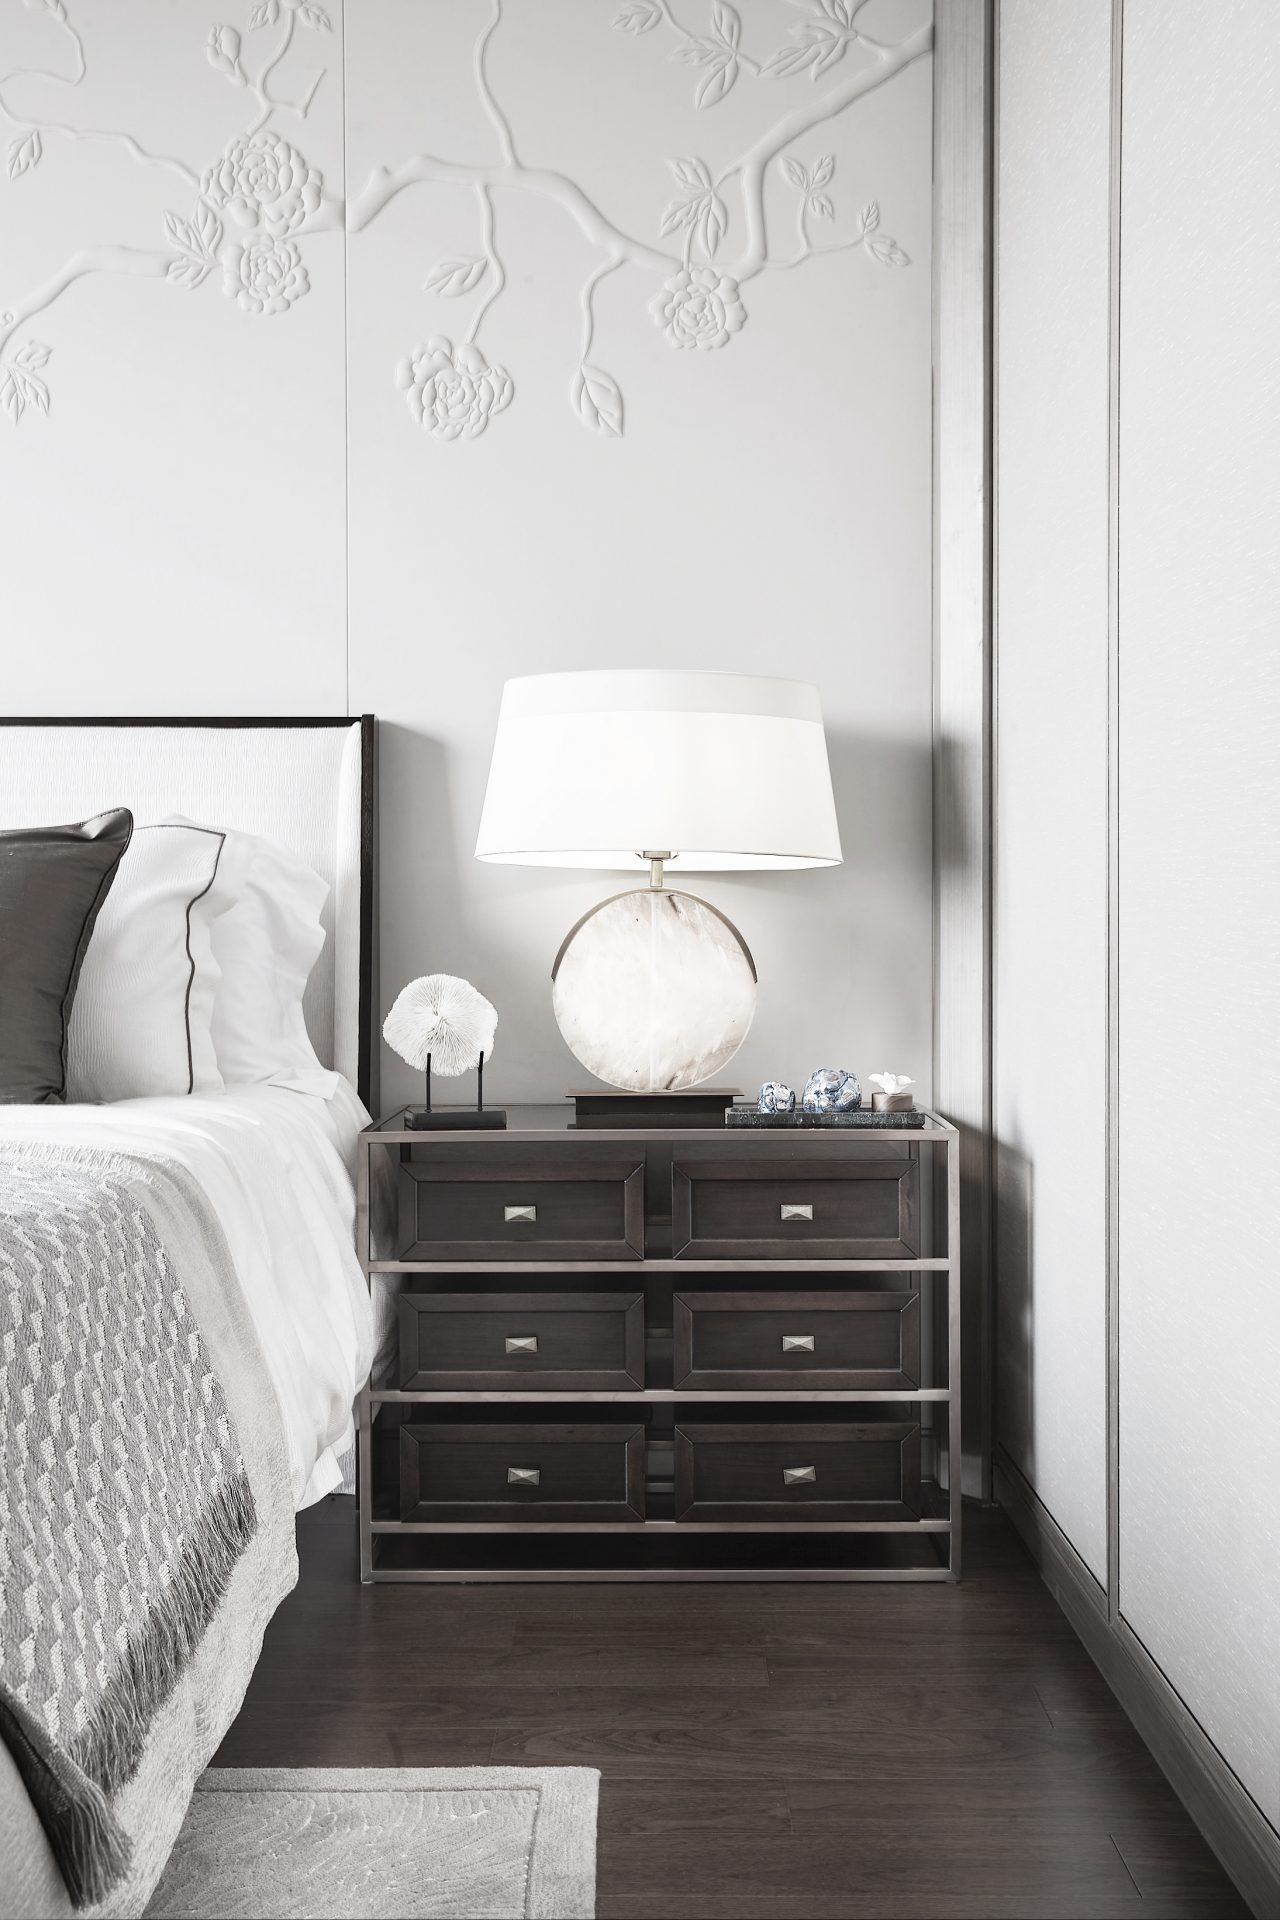 Master bedroom close up with textured wall and sideboard